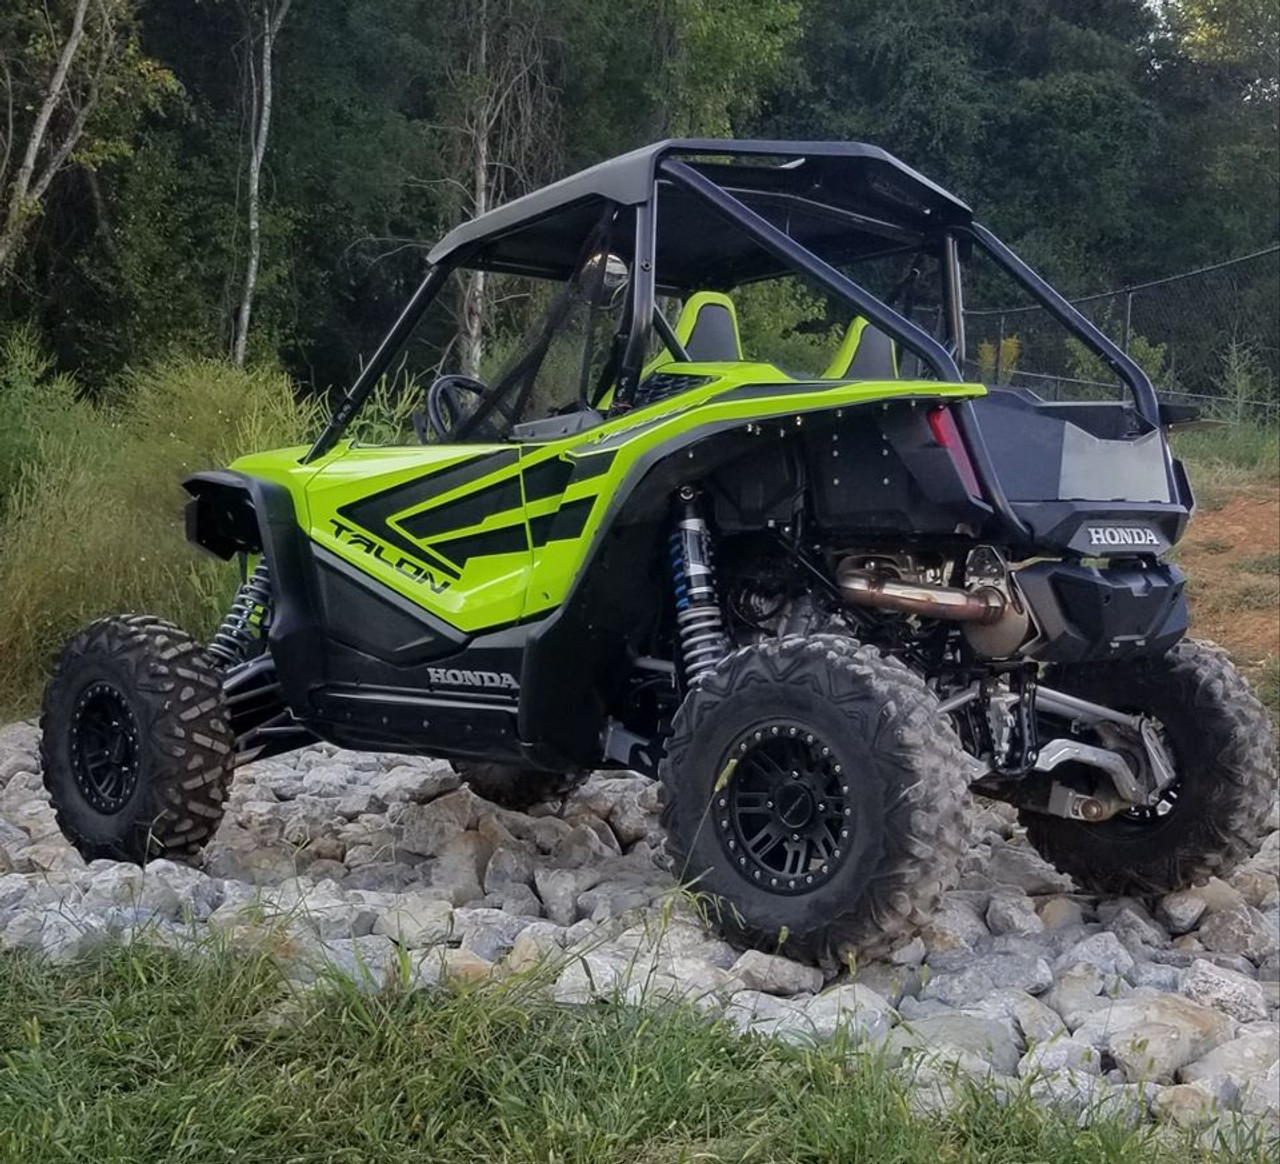 Honda Talon Bed Gate